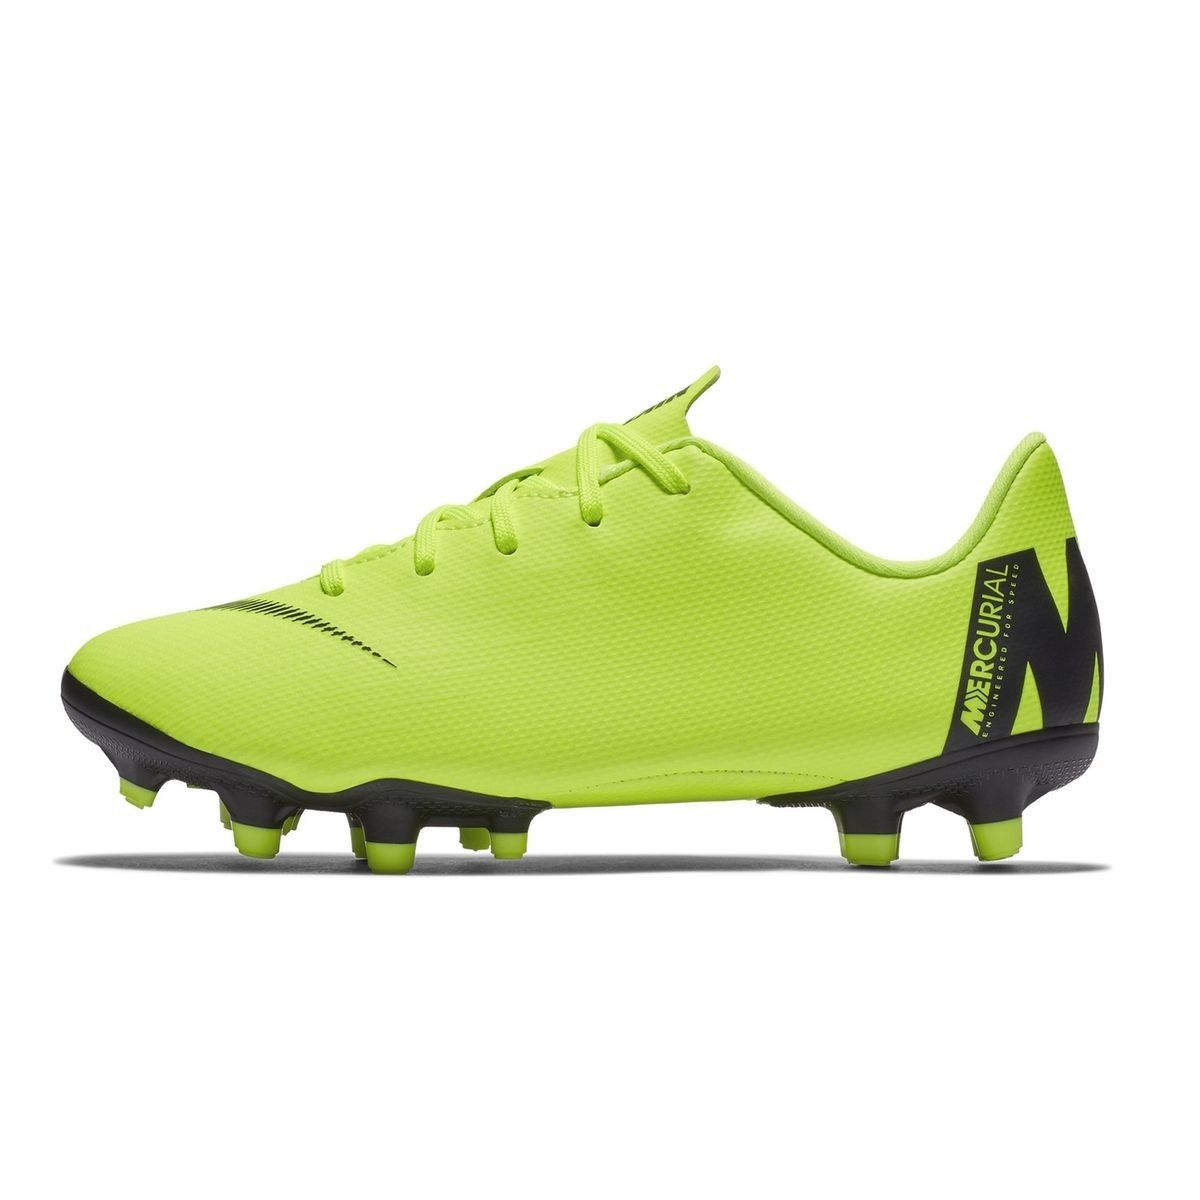 Vapor Mg Football Nike Junior Chaussures Academy Jaune Mercurial Xii vNPynw0m8O